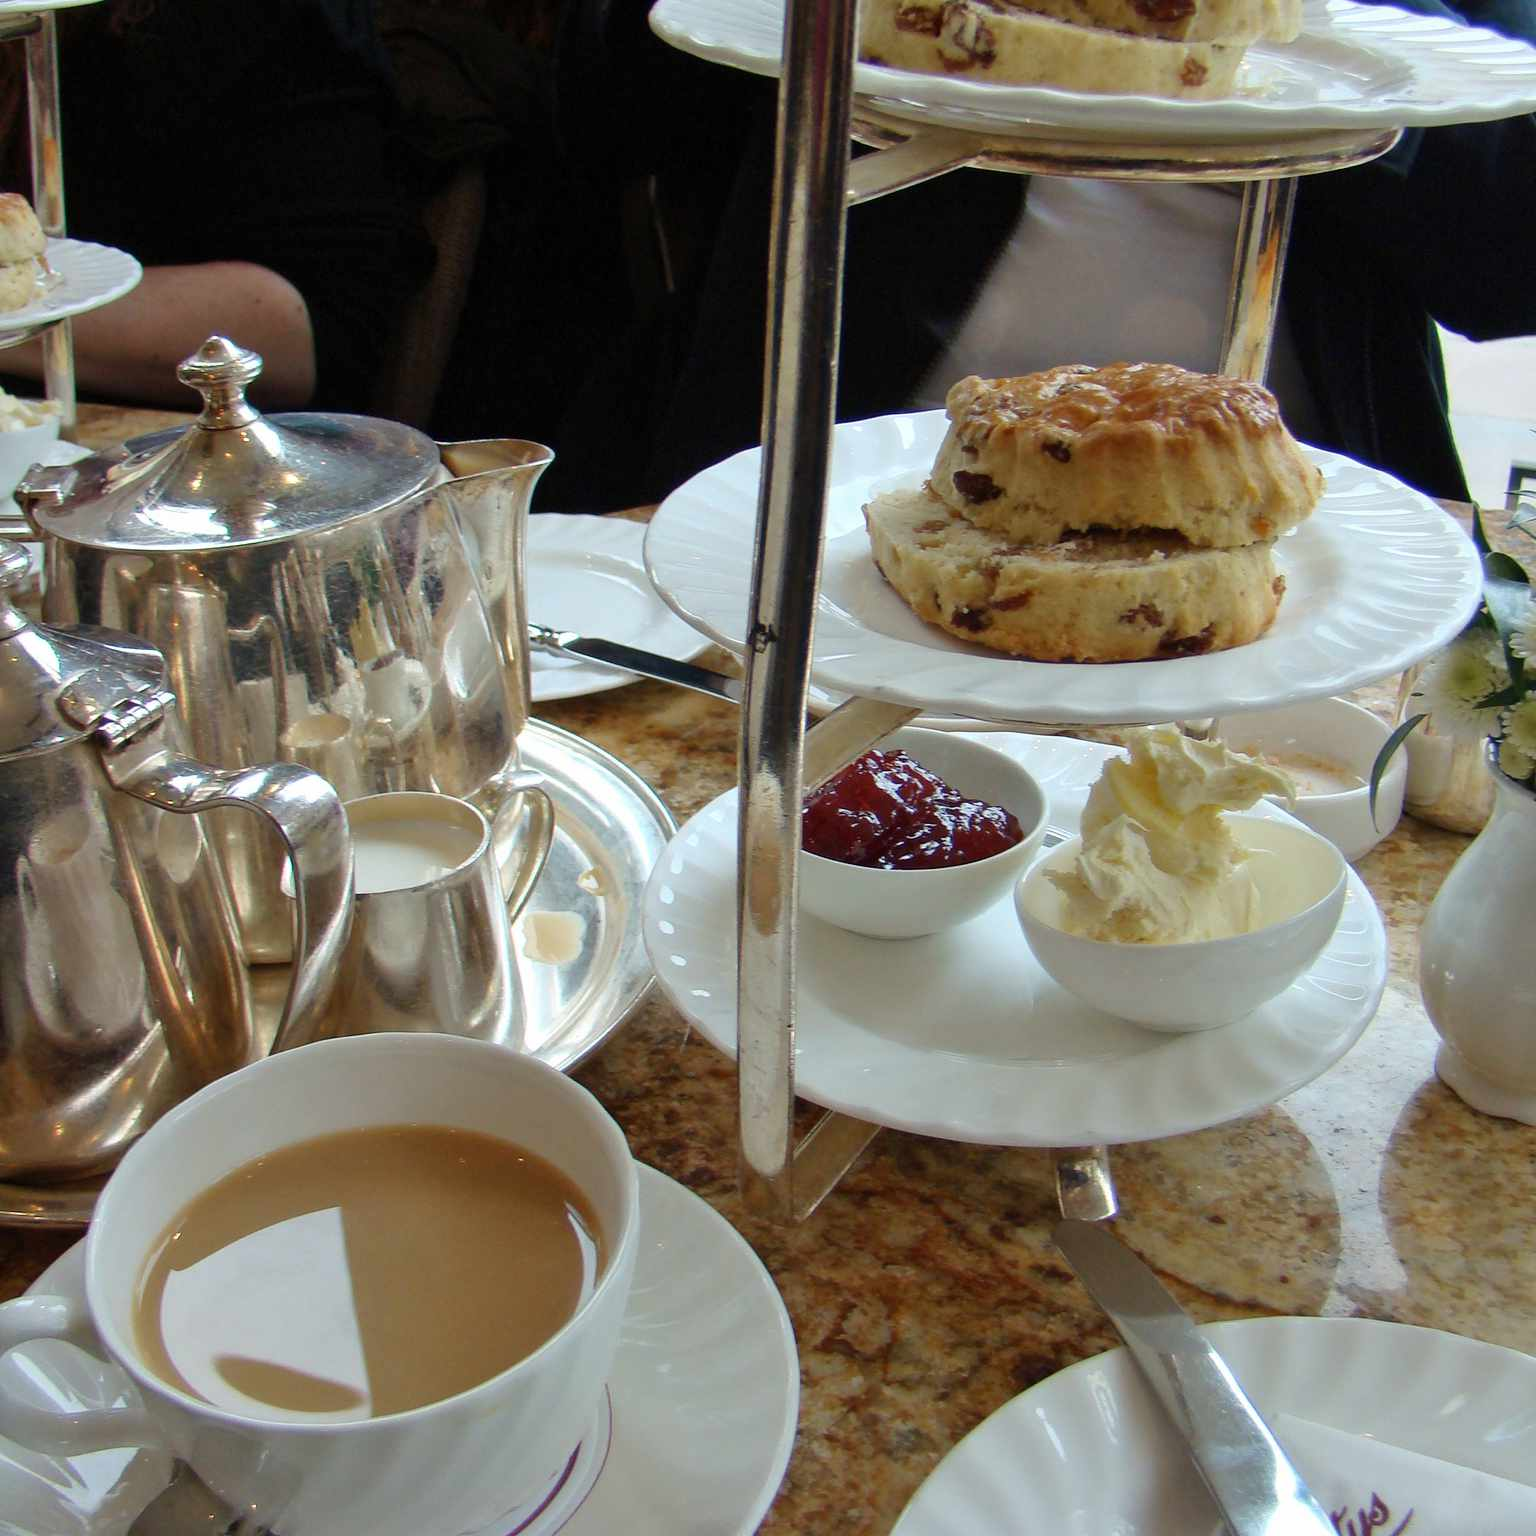 Afternoon tea is served throughout London and the United Kingdom.